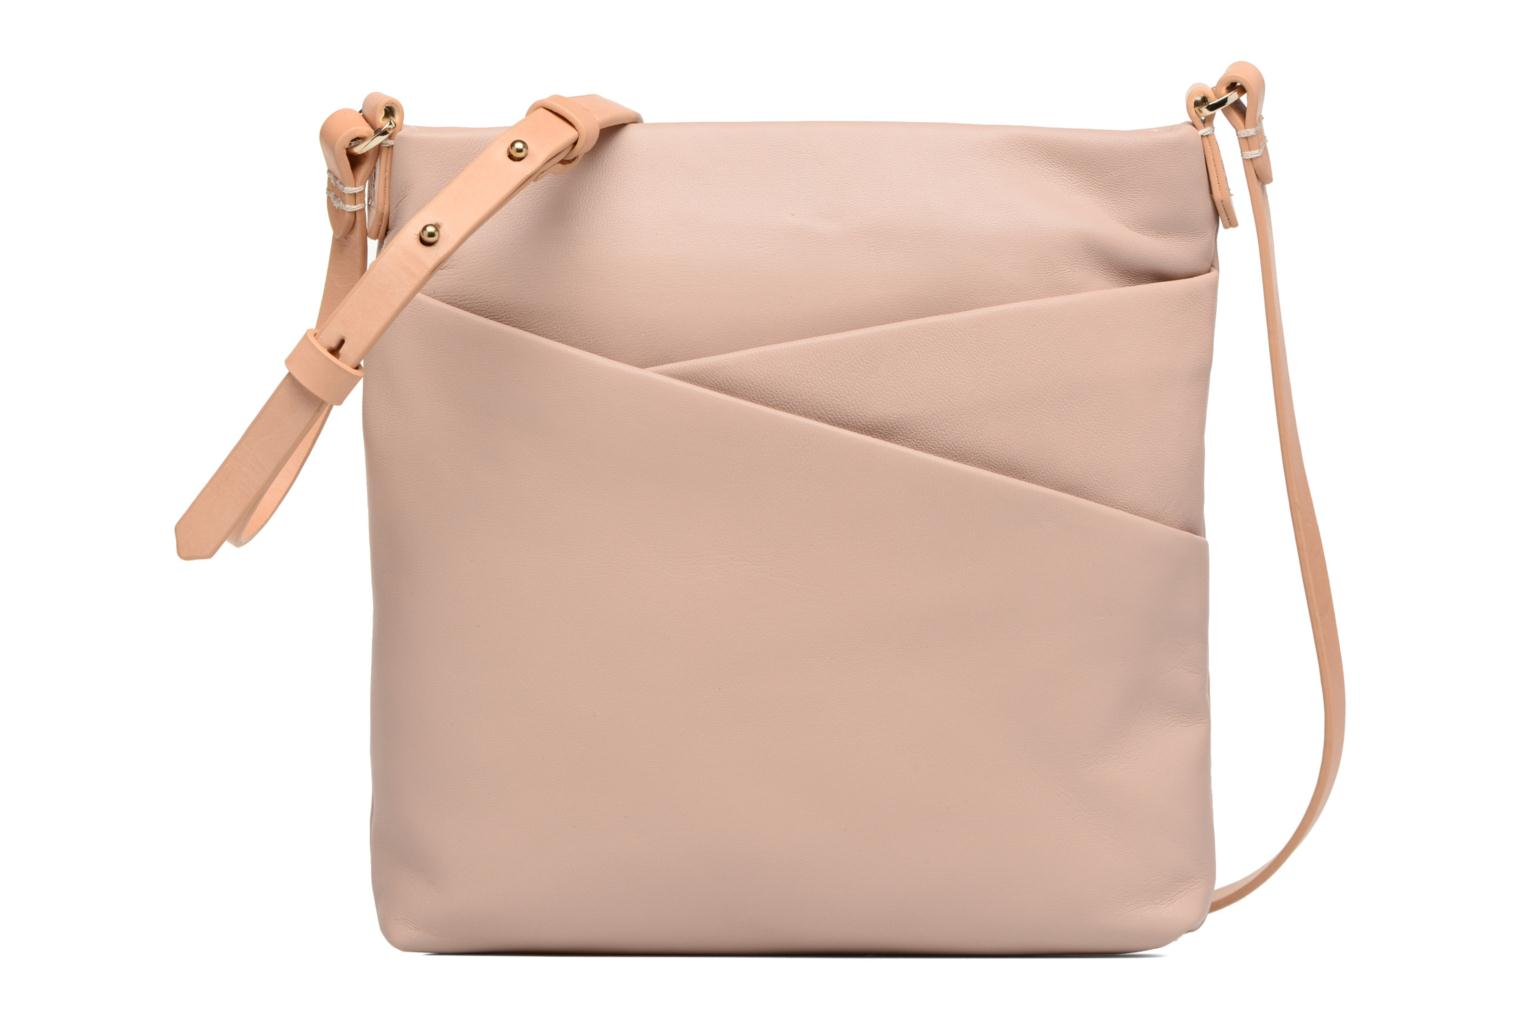 TOTTINGTON DUO Crossbody cuir Oat